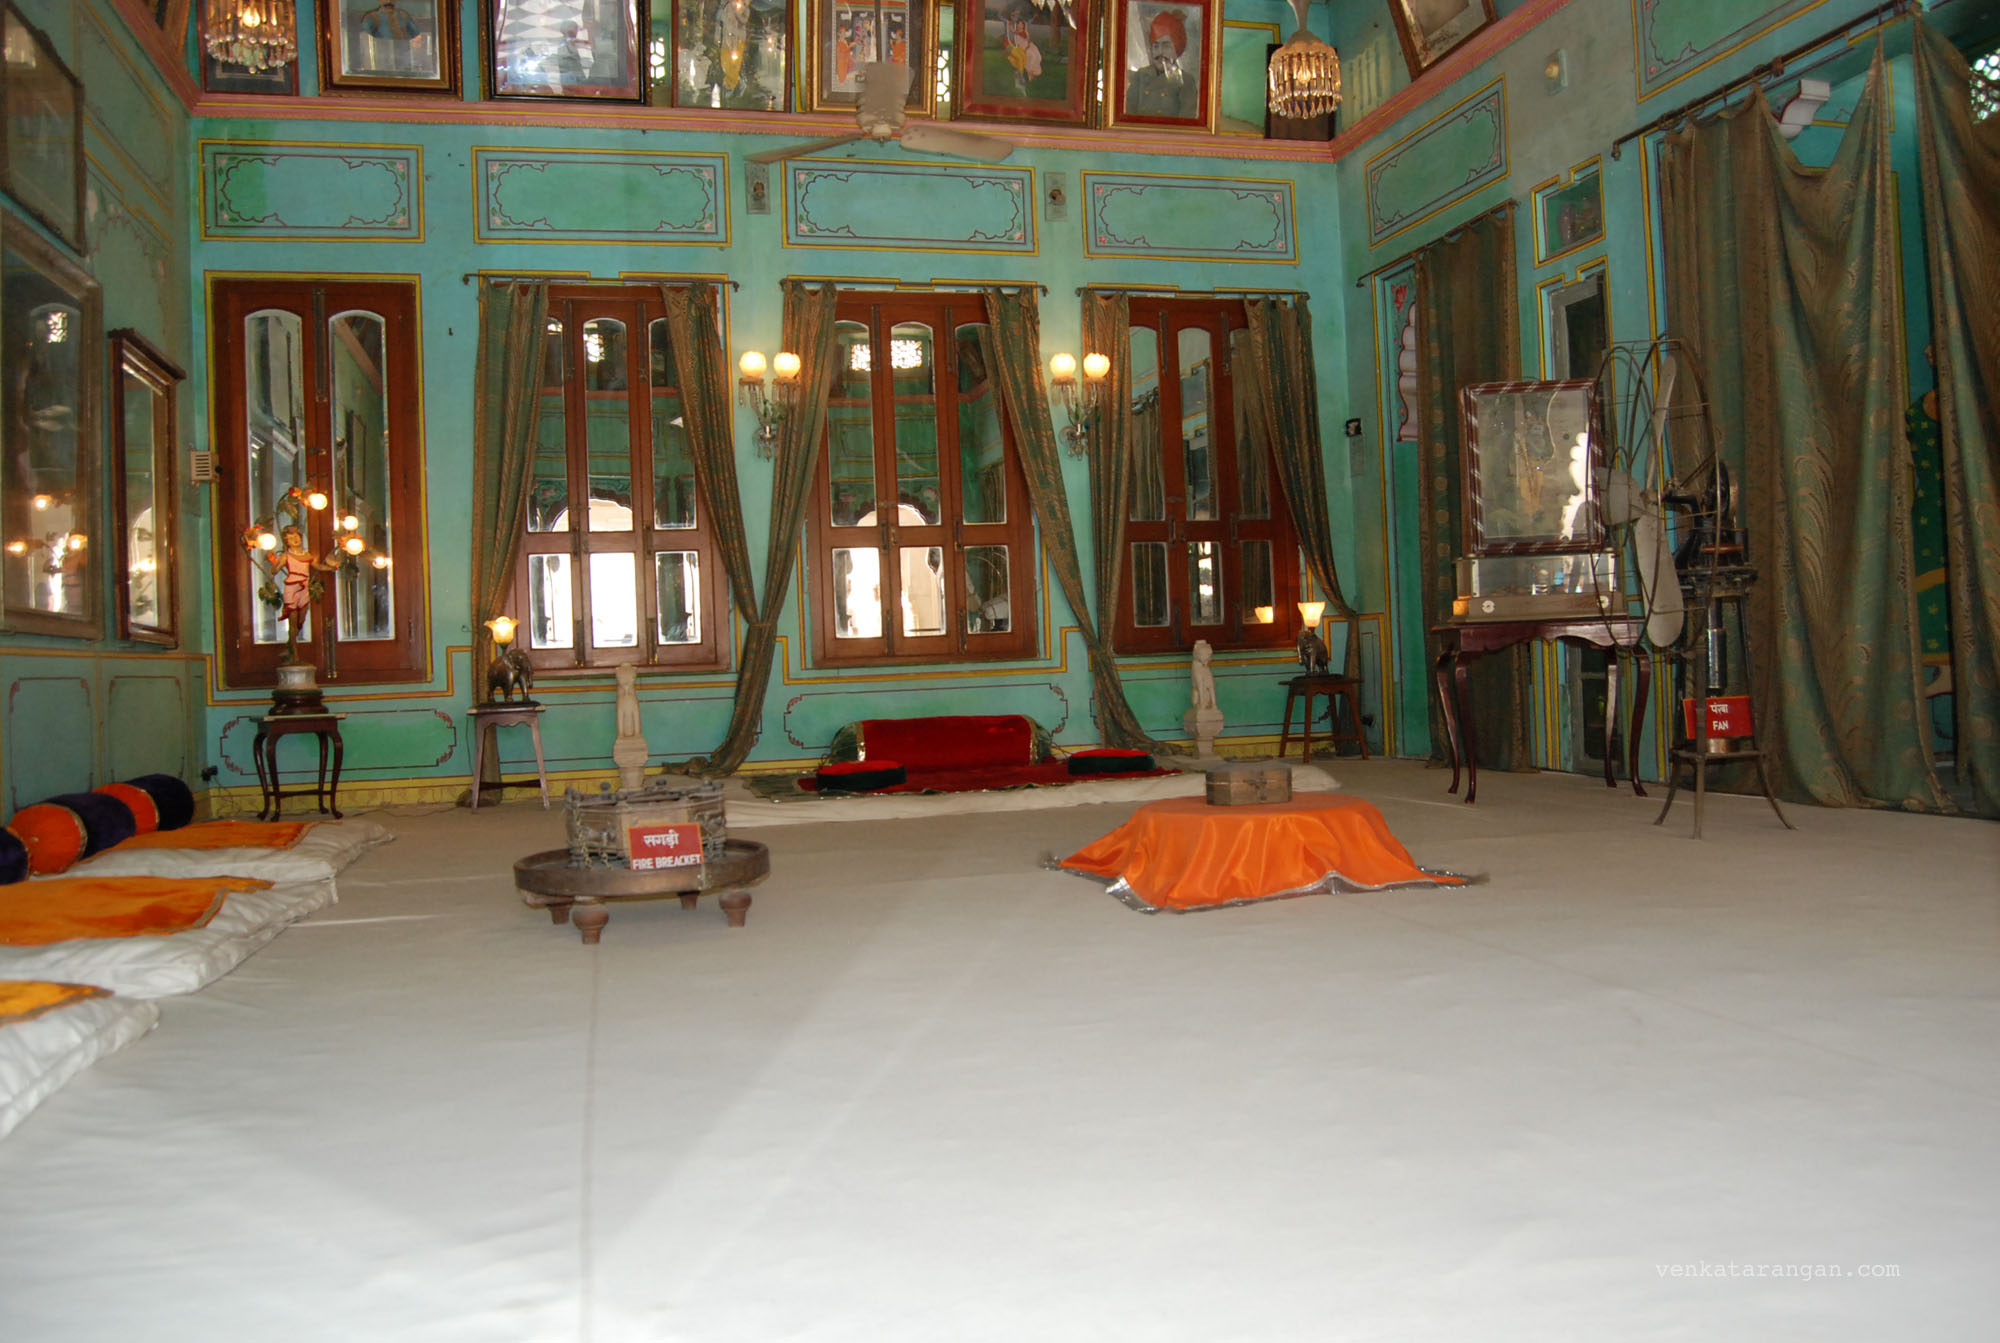 Rooms in City Palace